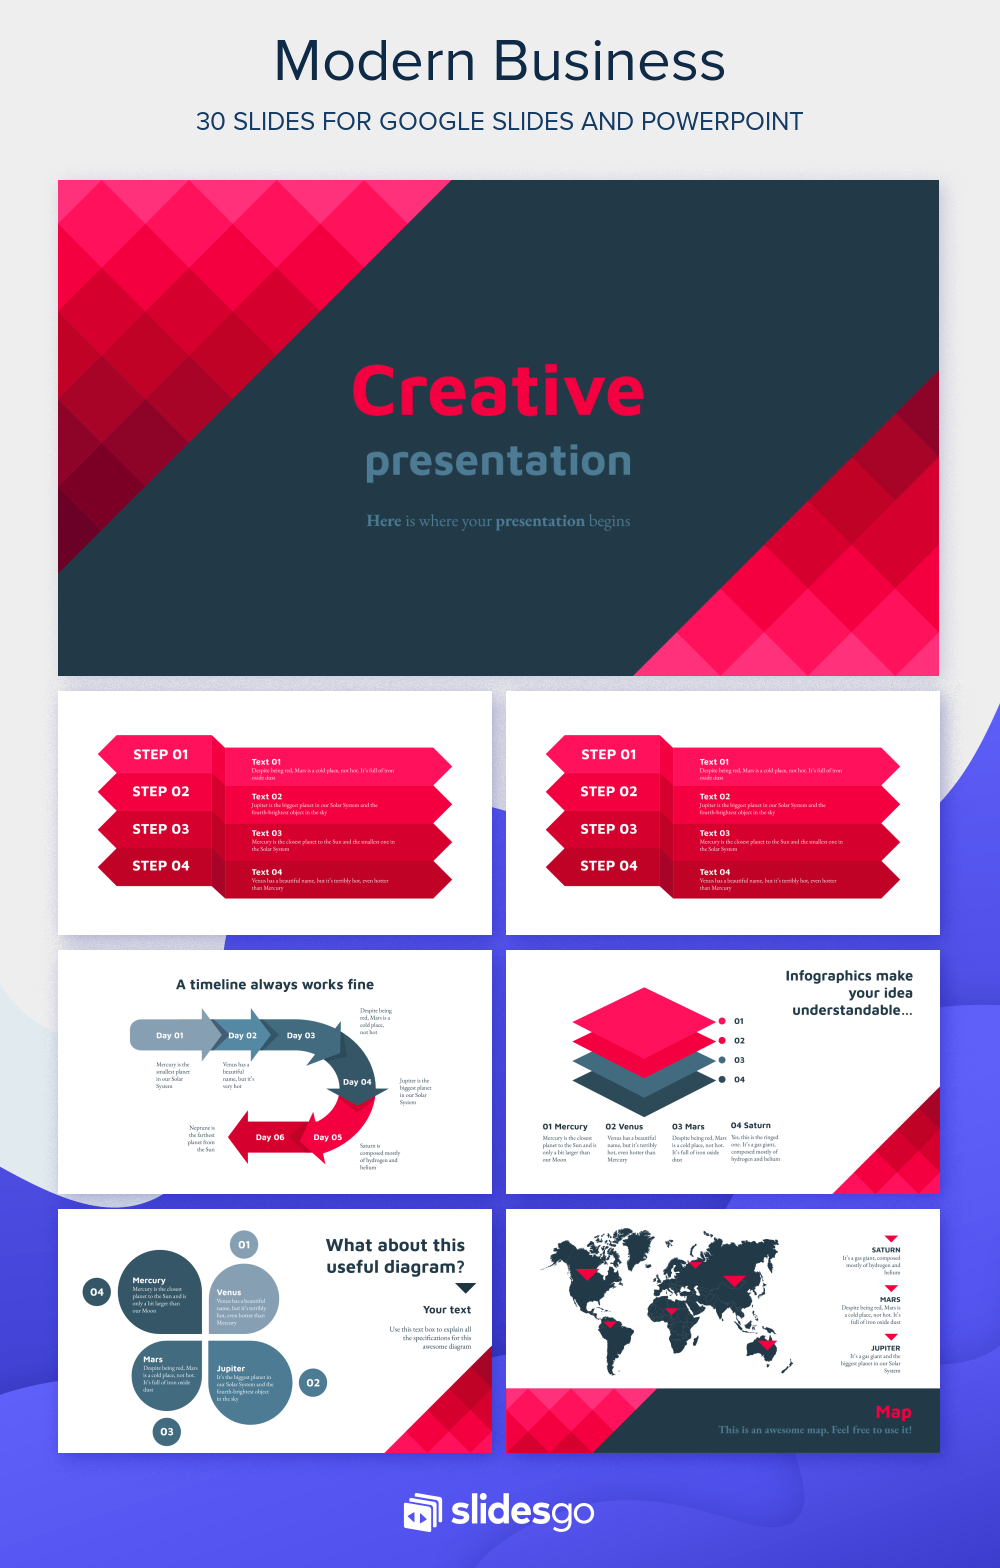 100 Free Template Available For Google Slides And Powerpoint You Can Use In Your Presentations Powerpoint Business Powerpoint Templates Print Design Template